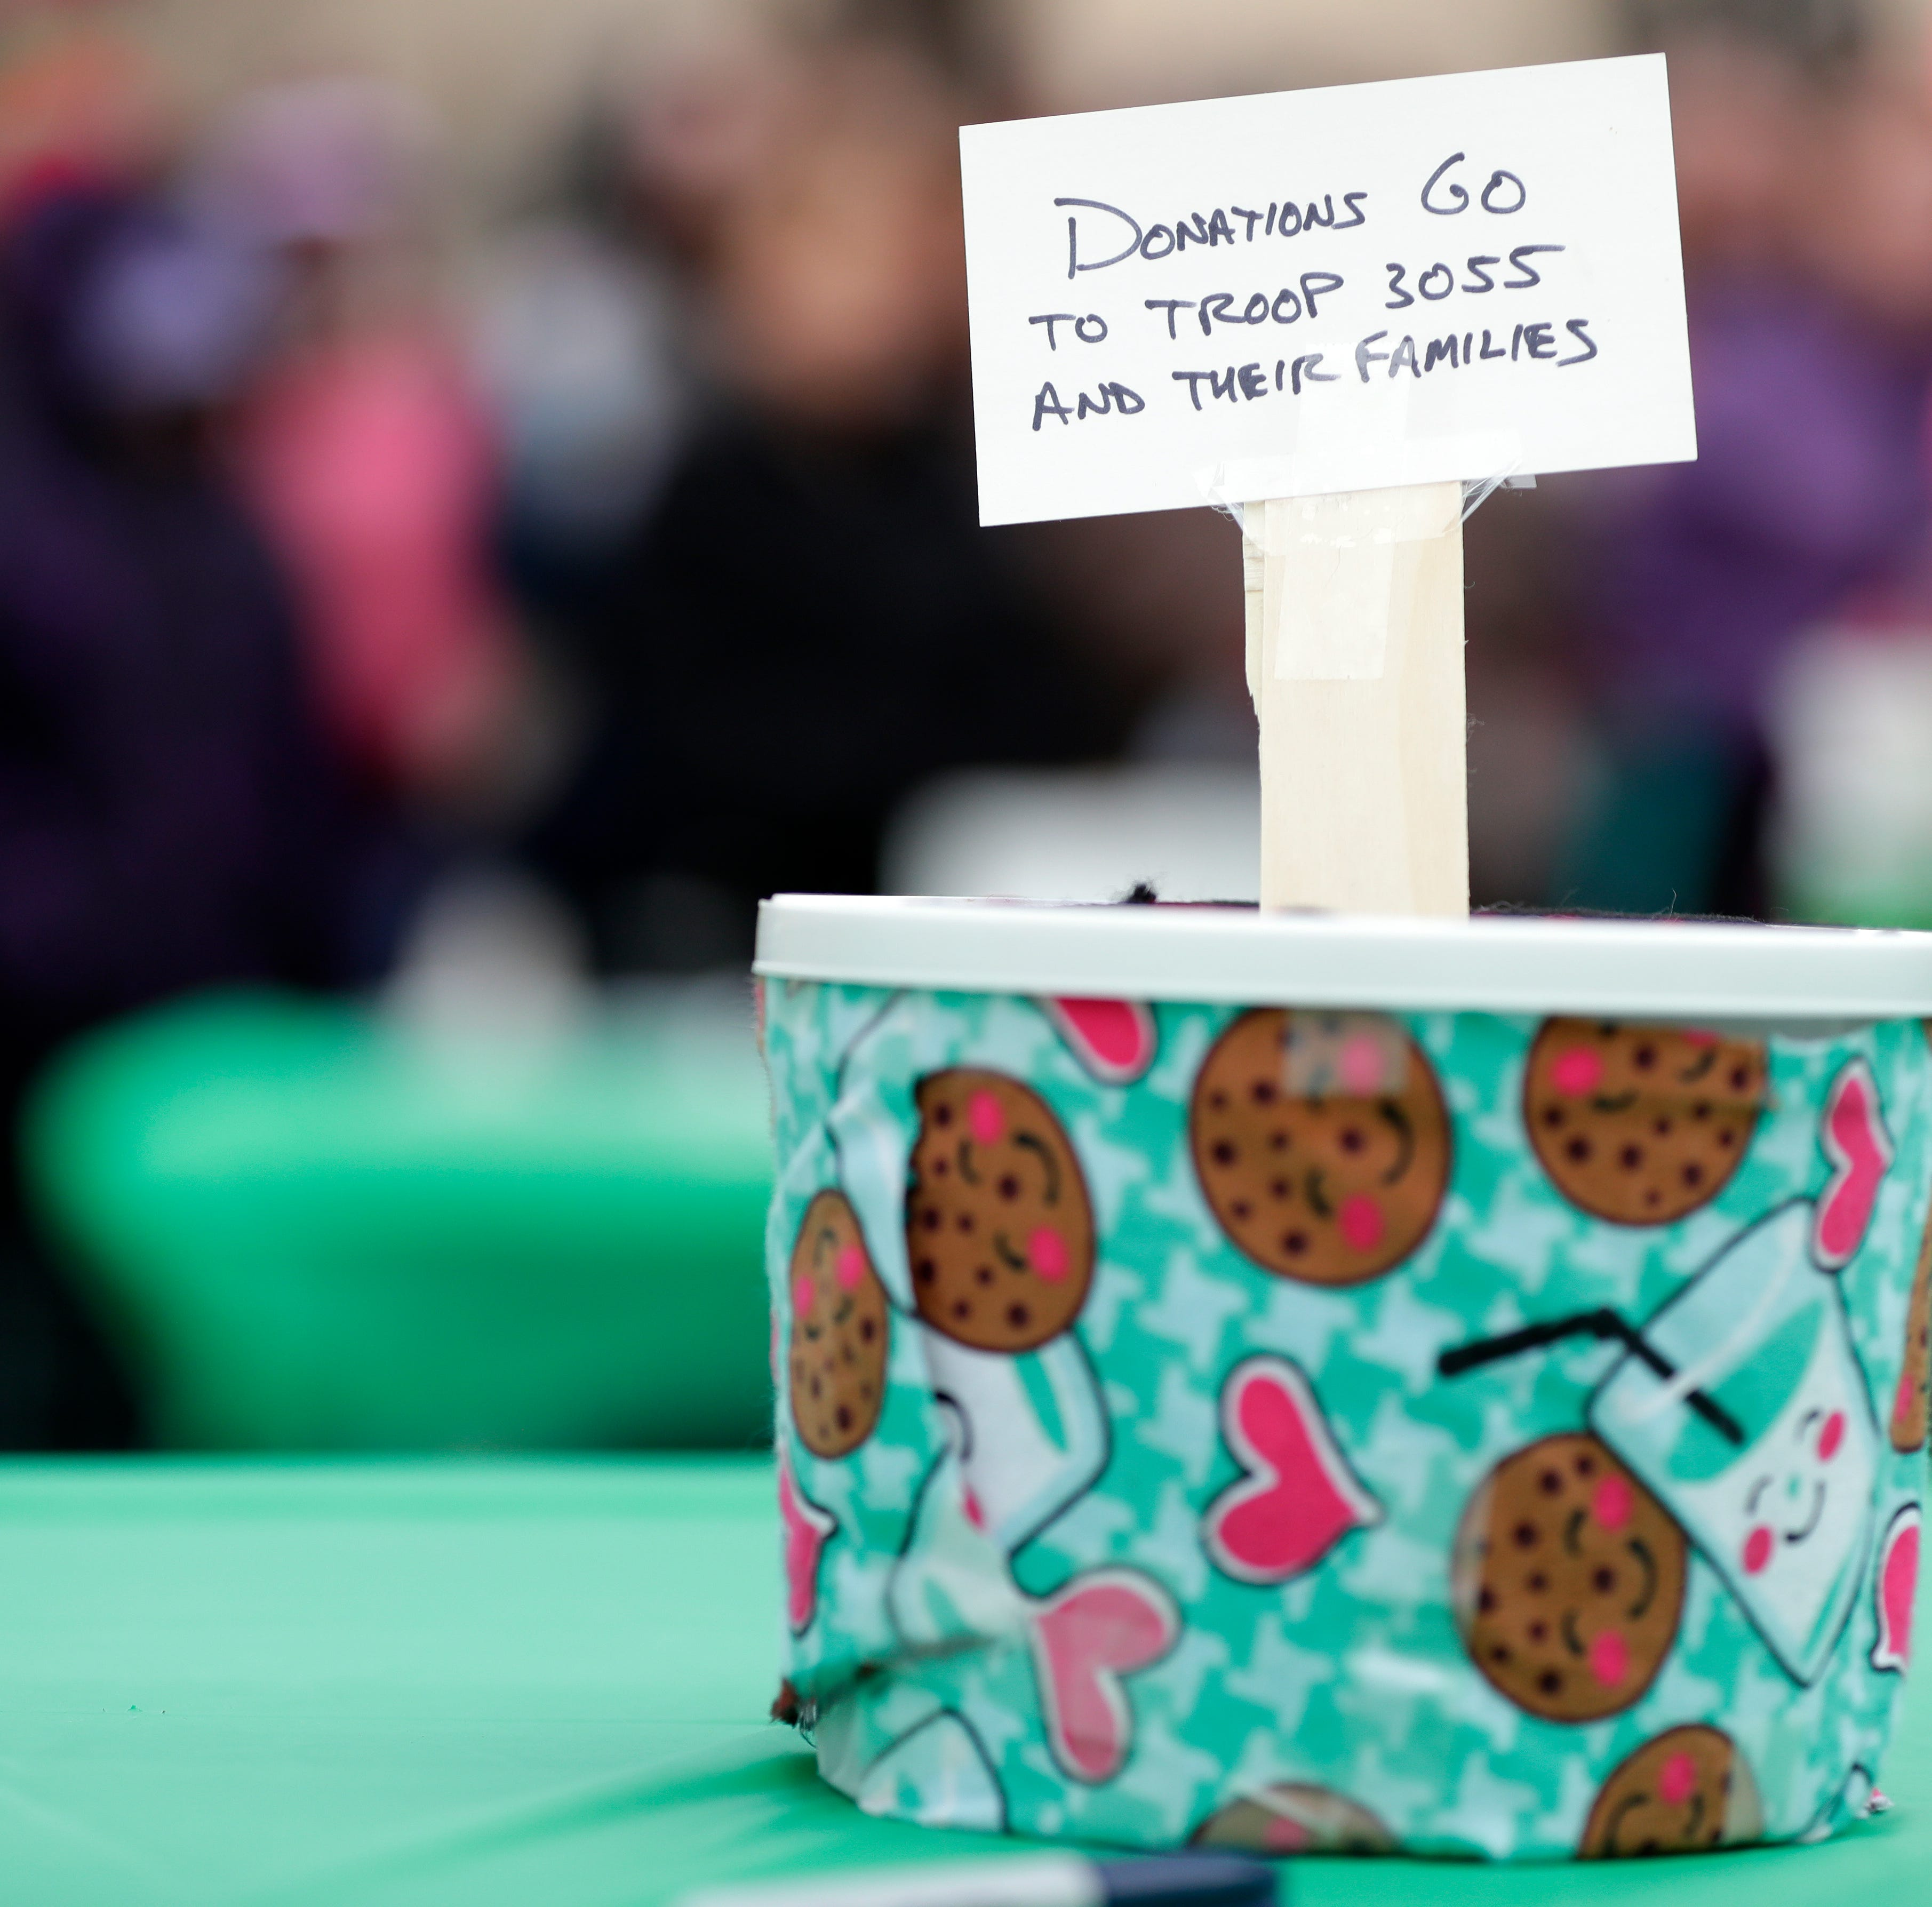 Girl Scout leader dismissed after organizing event for traffic crash victims